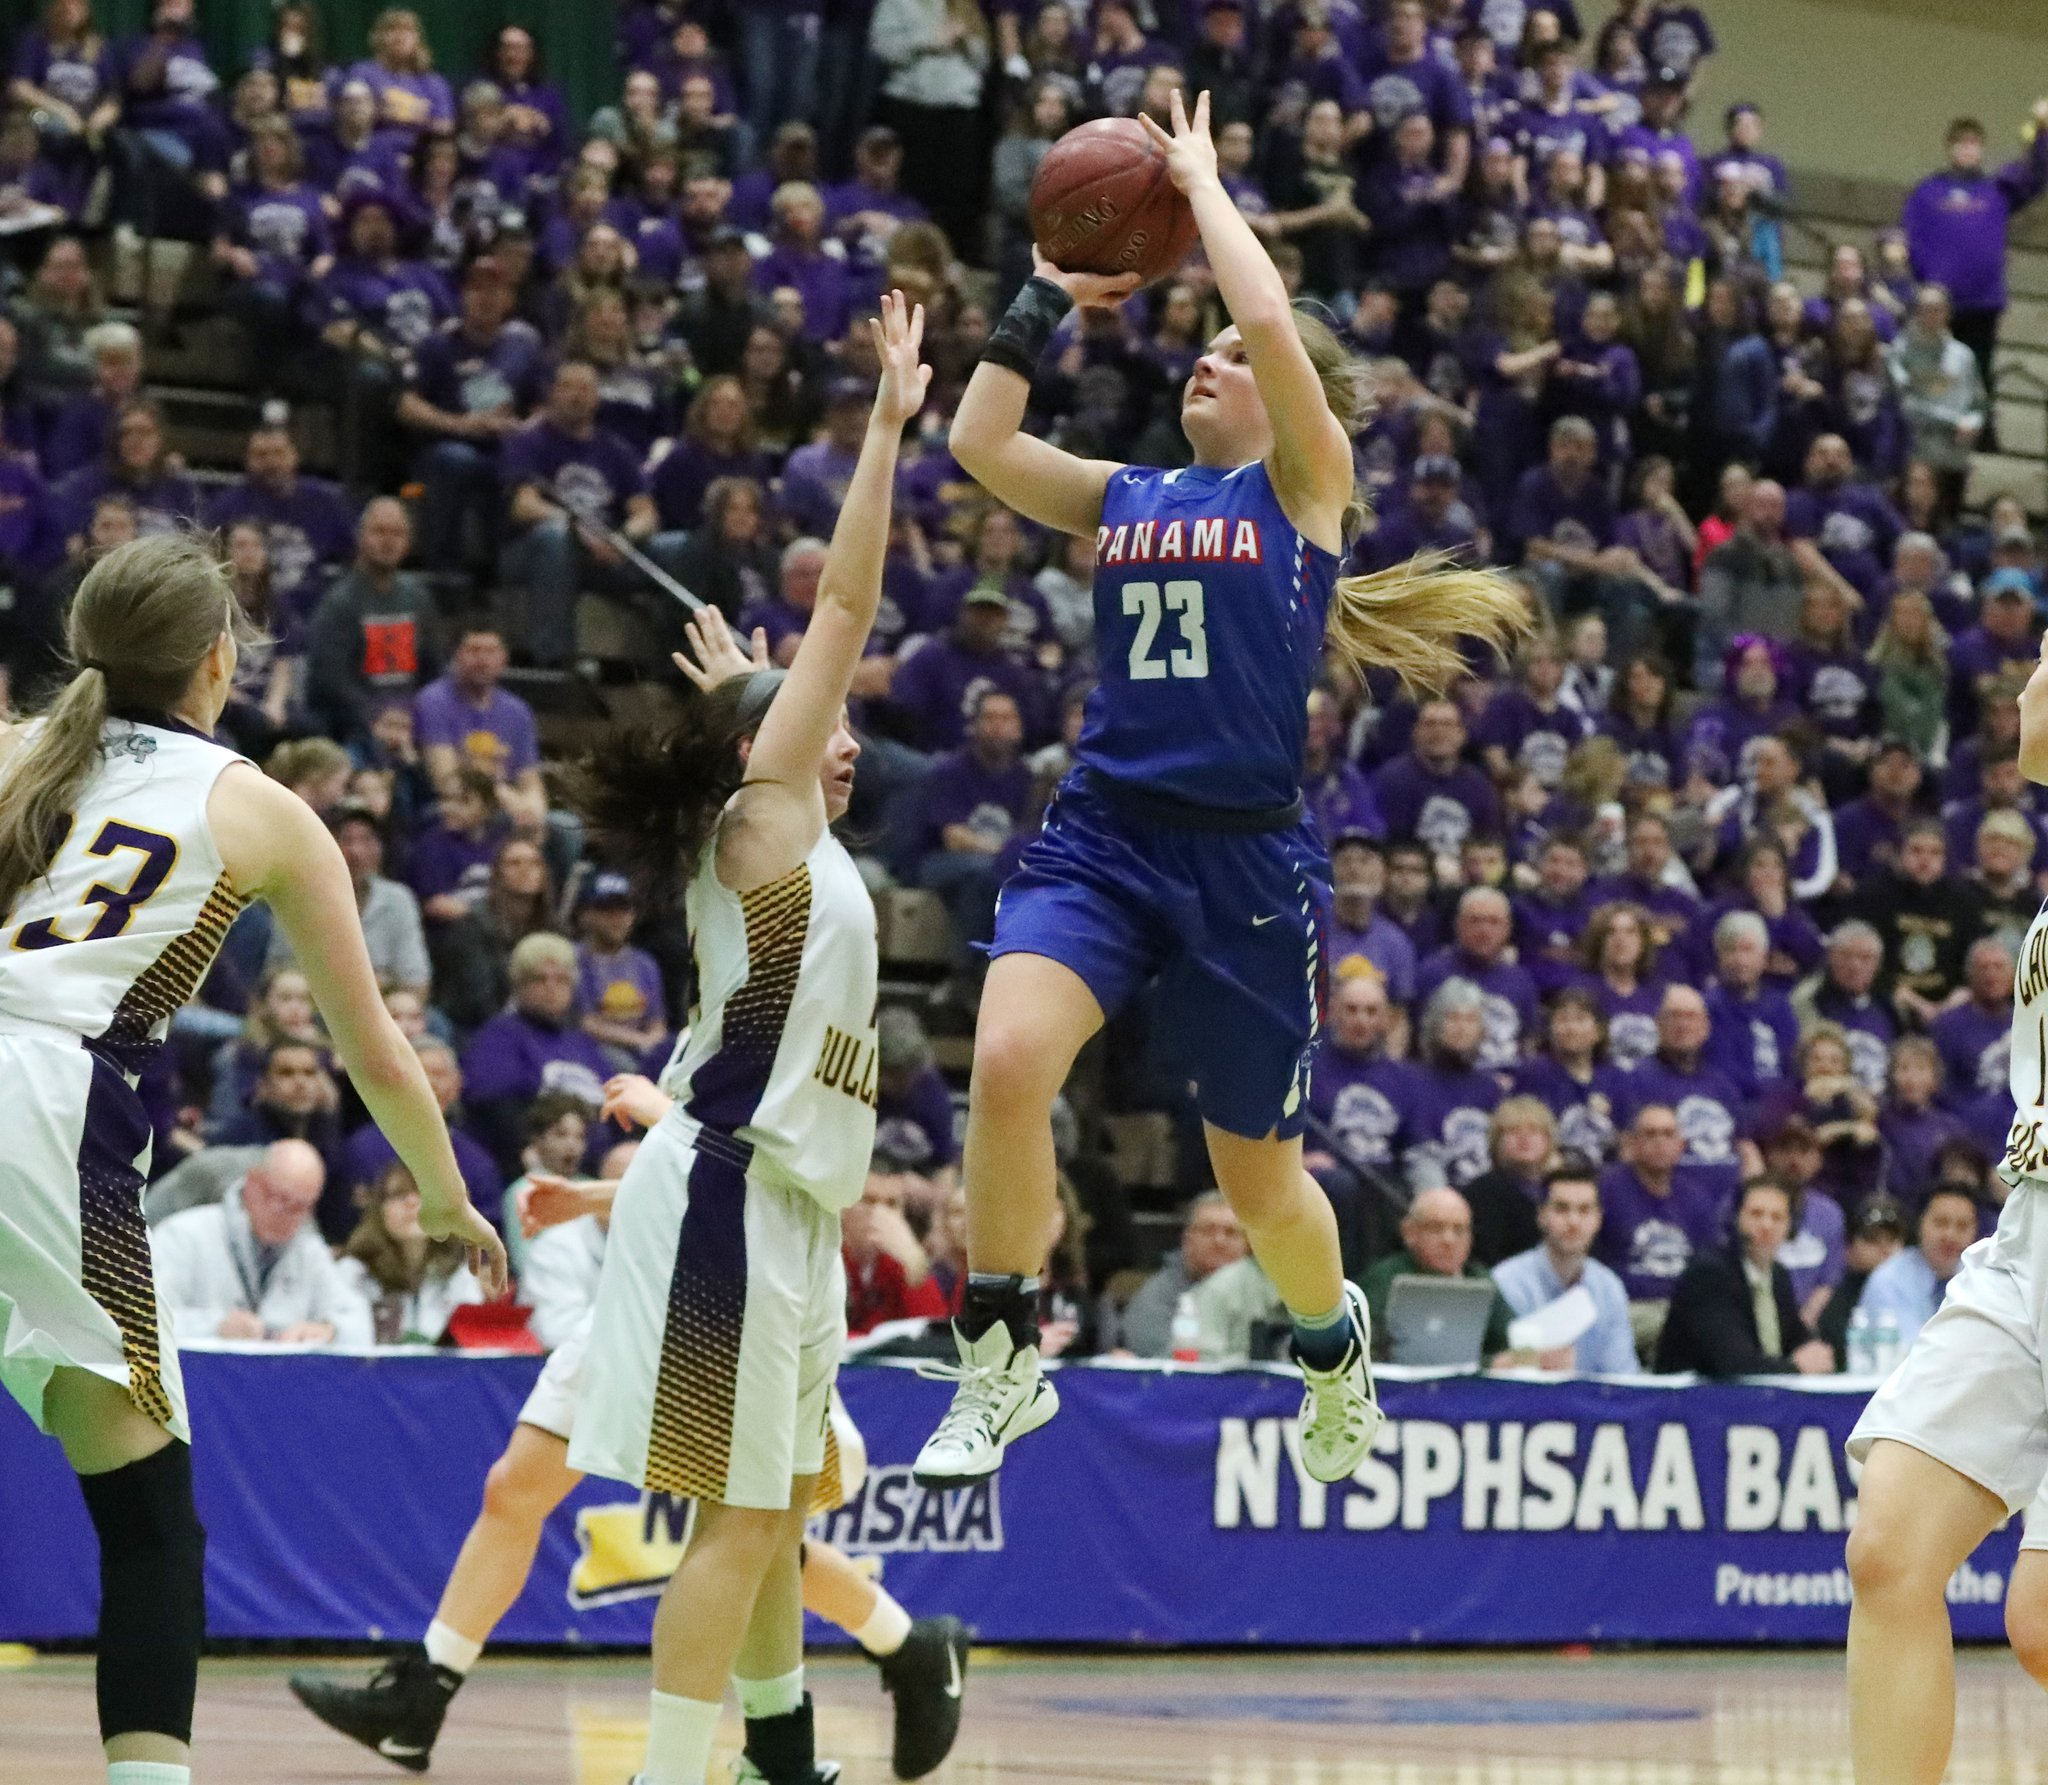 Madalyn Bowen (23) led Panama with 20 points. (James P. McCoy / Buffalo News)